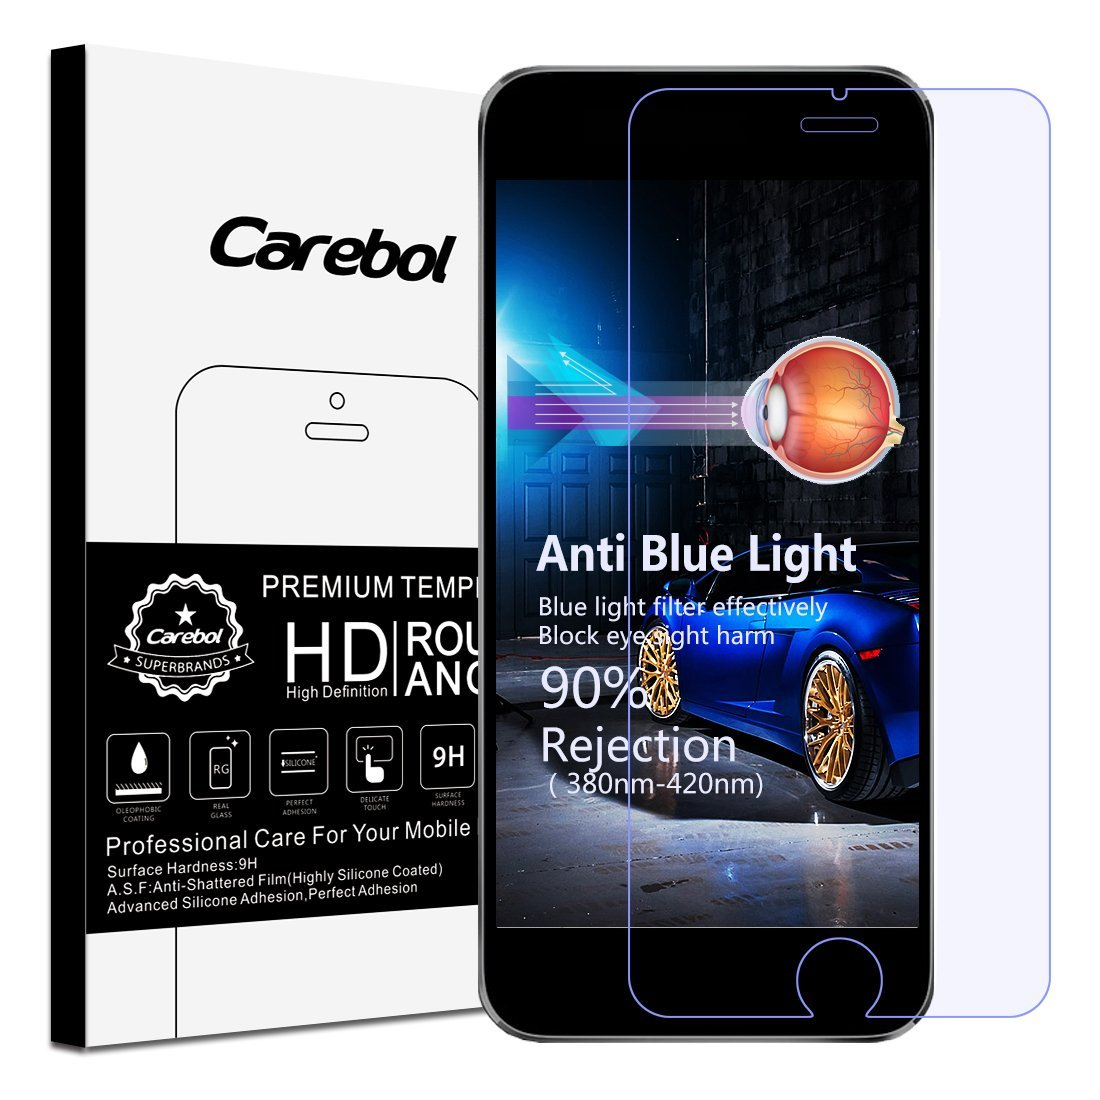 Carebol Anti-Blue Light Premium Tempered Glass Screen Protector for iPhone 6 /iPhone 6S ,[Eye Protect],Explosion-proof screen,High Definition